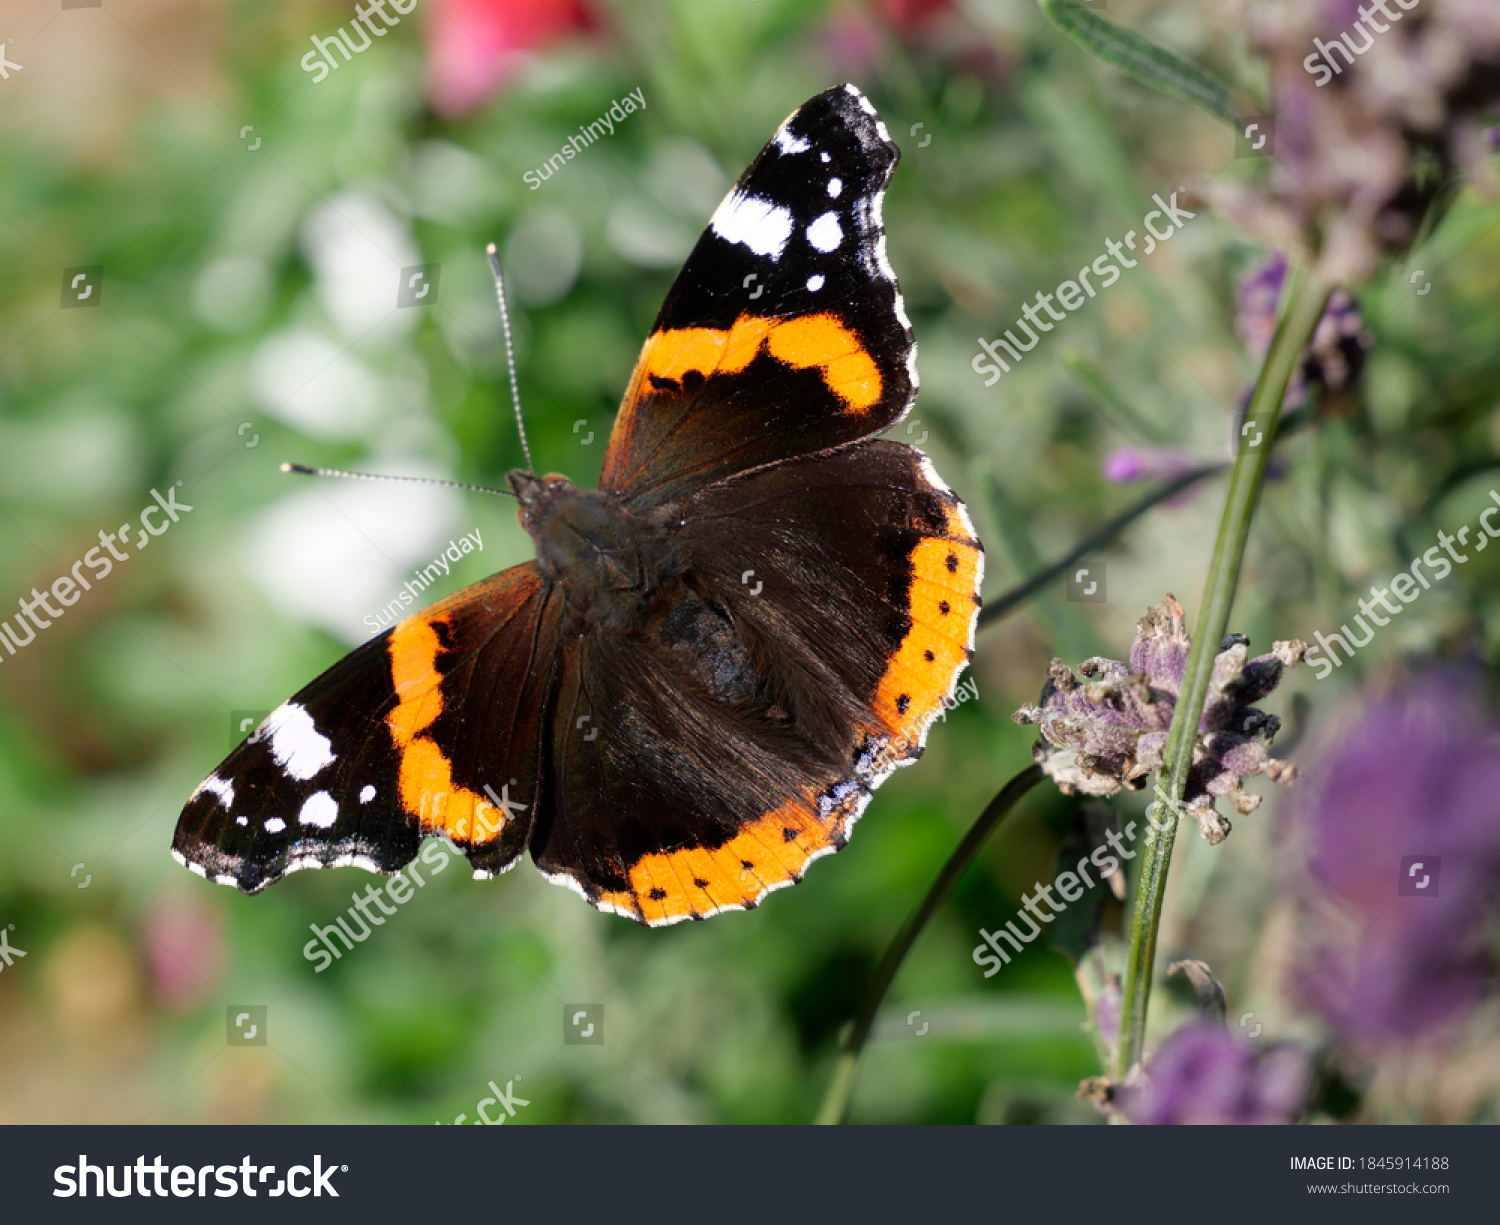 stock-photo-beautiful-butterfly-in-a-gar